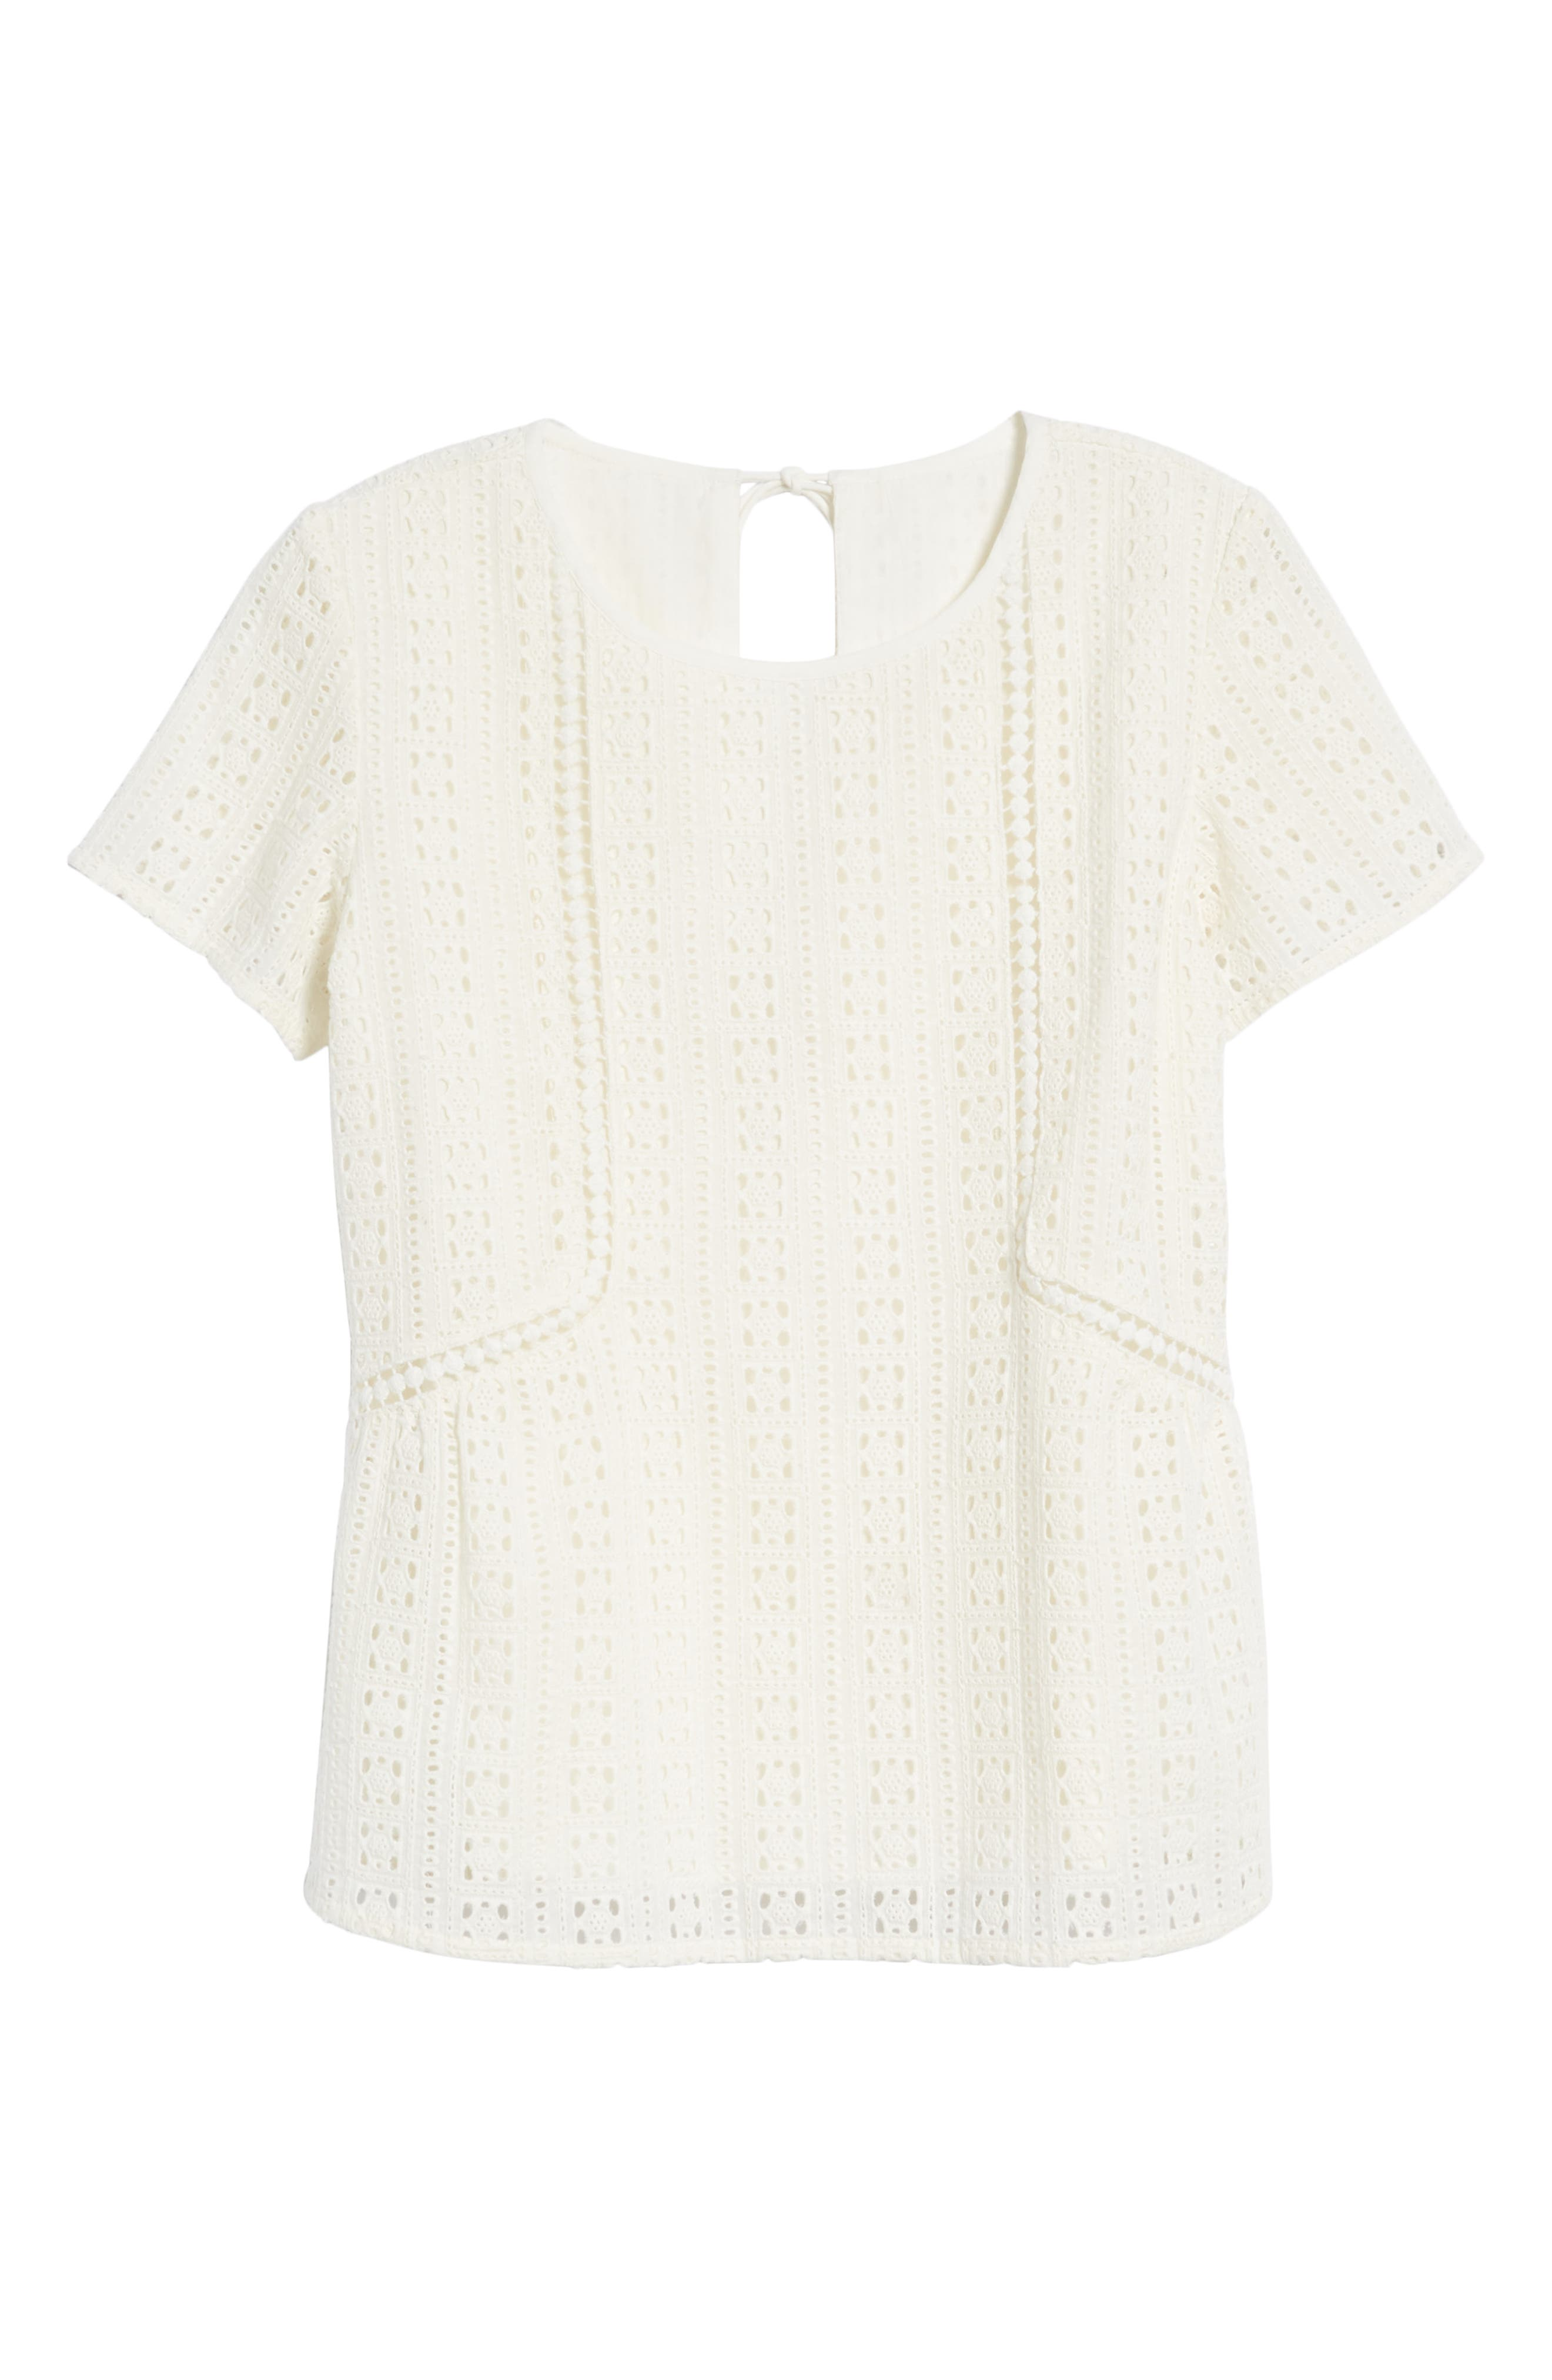 Clo Crochet Blouse,                             Alternate thumbnail 6, color,                             Off White